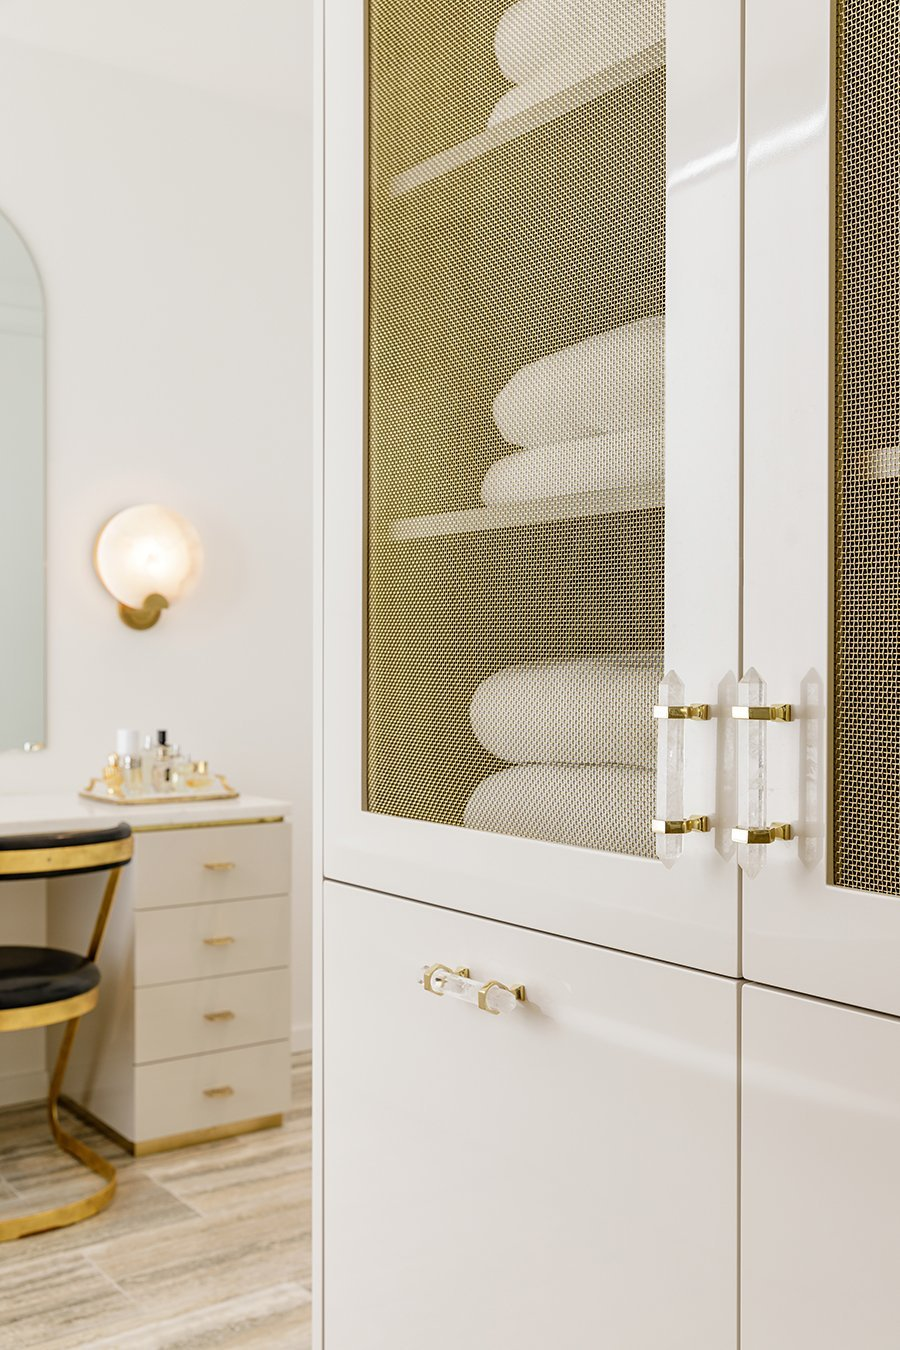 Matthew Studios Hardware: Freya Medium Pull in Clear Quartz and Polished Brass and Jarp Pull in Polished Brass. Interiors by JHL Design. Photography by Lincoln Barbour.